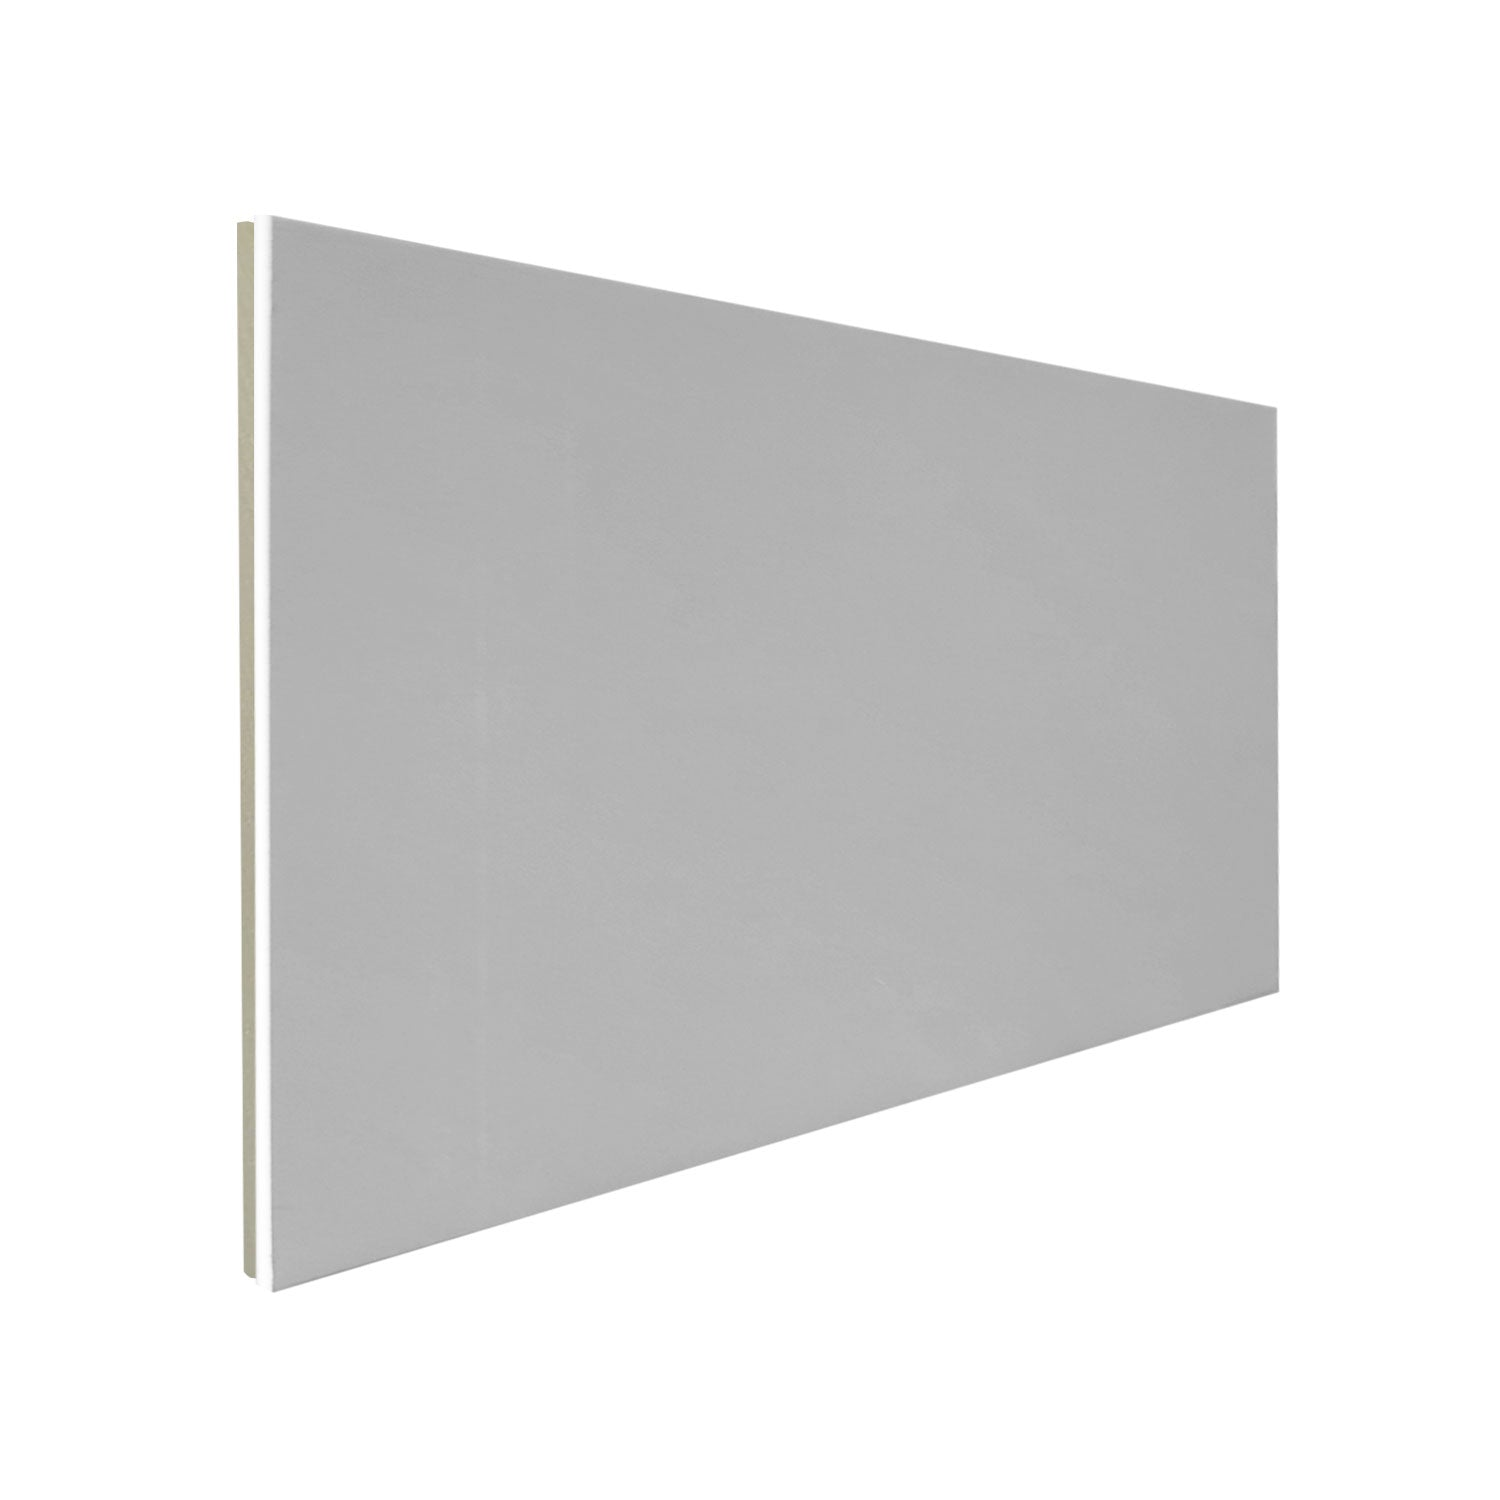 Thermal Check Plasterboard 8' x 4' x 22mm